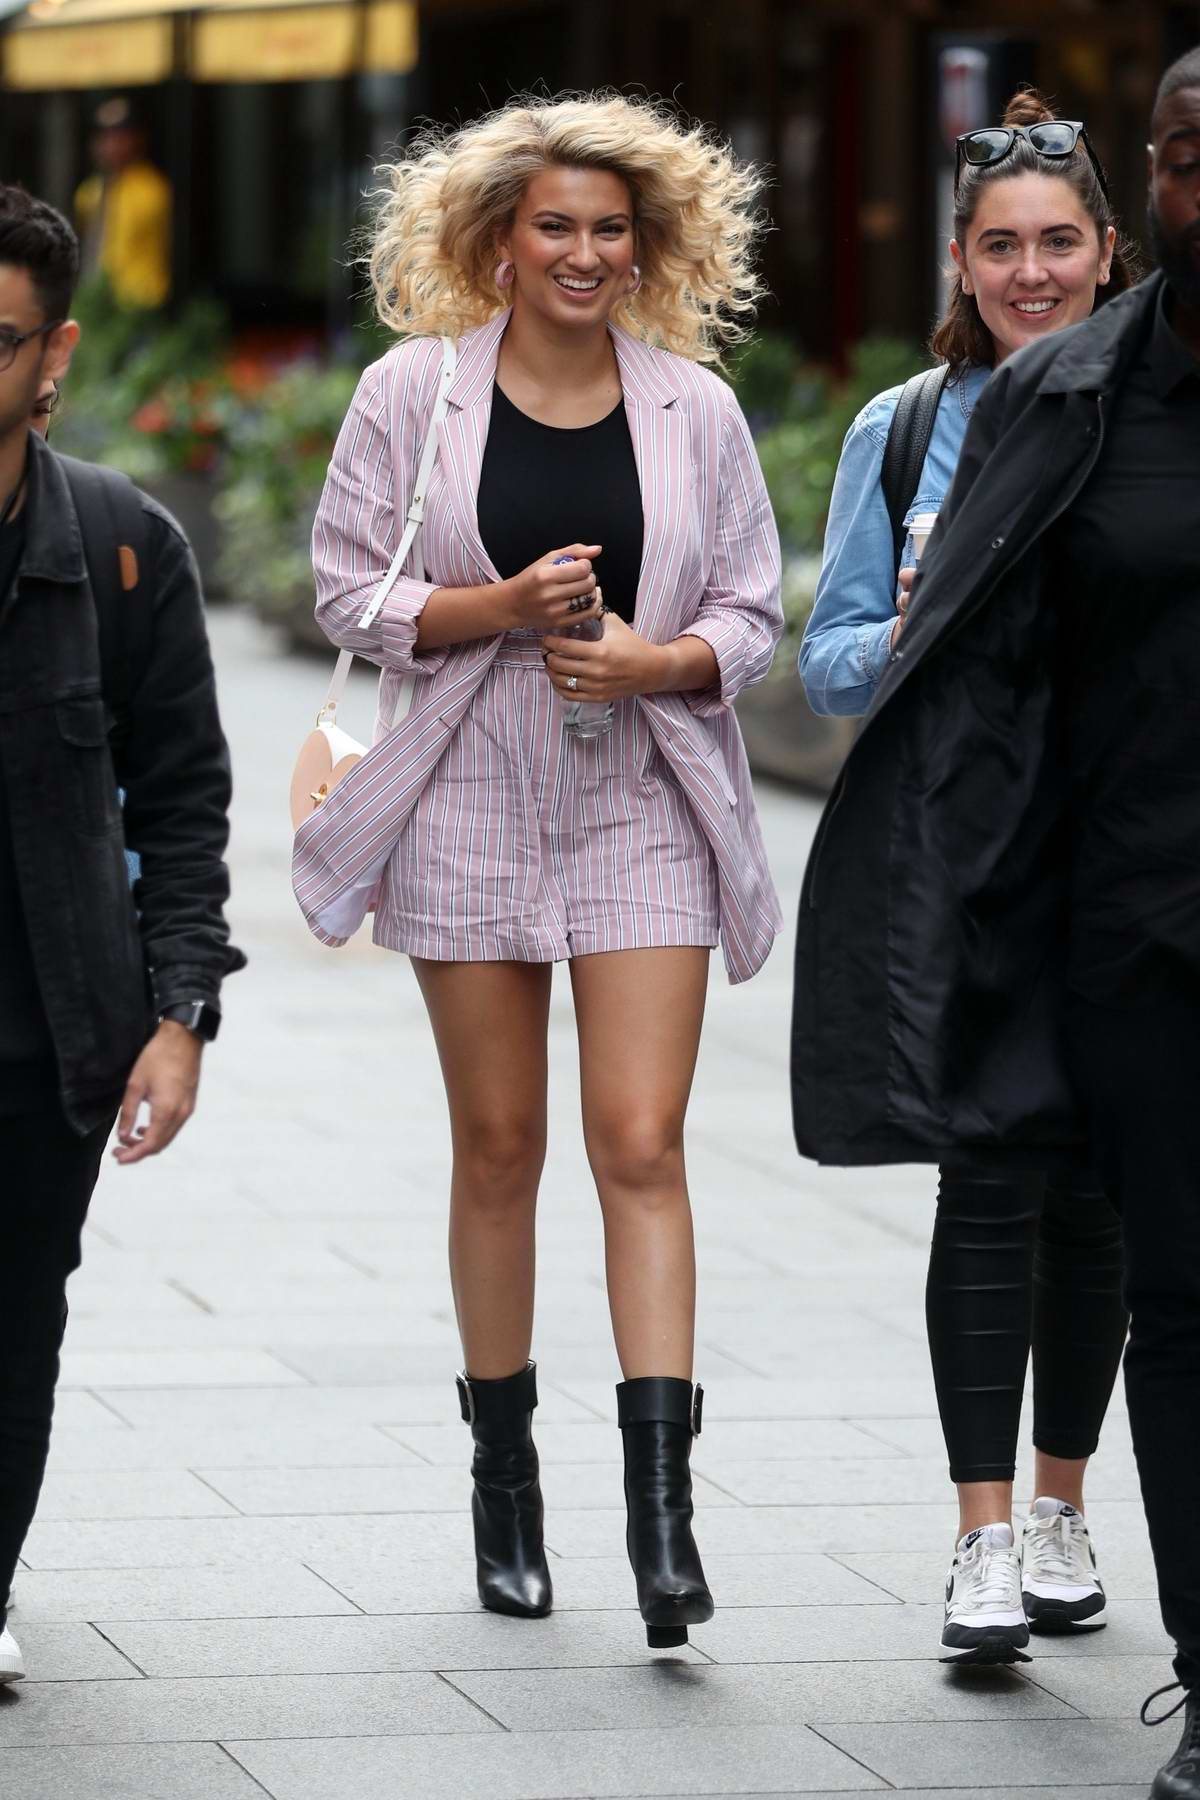 Tori Kelly looks great in a striped pink shorts suit as she arrives at Global Radio in London, UK